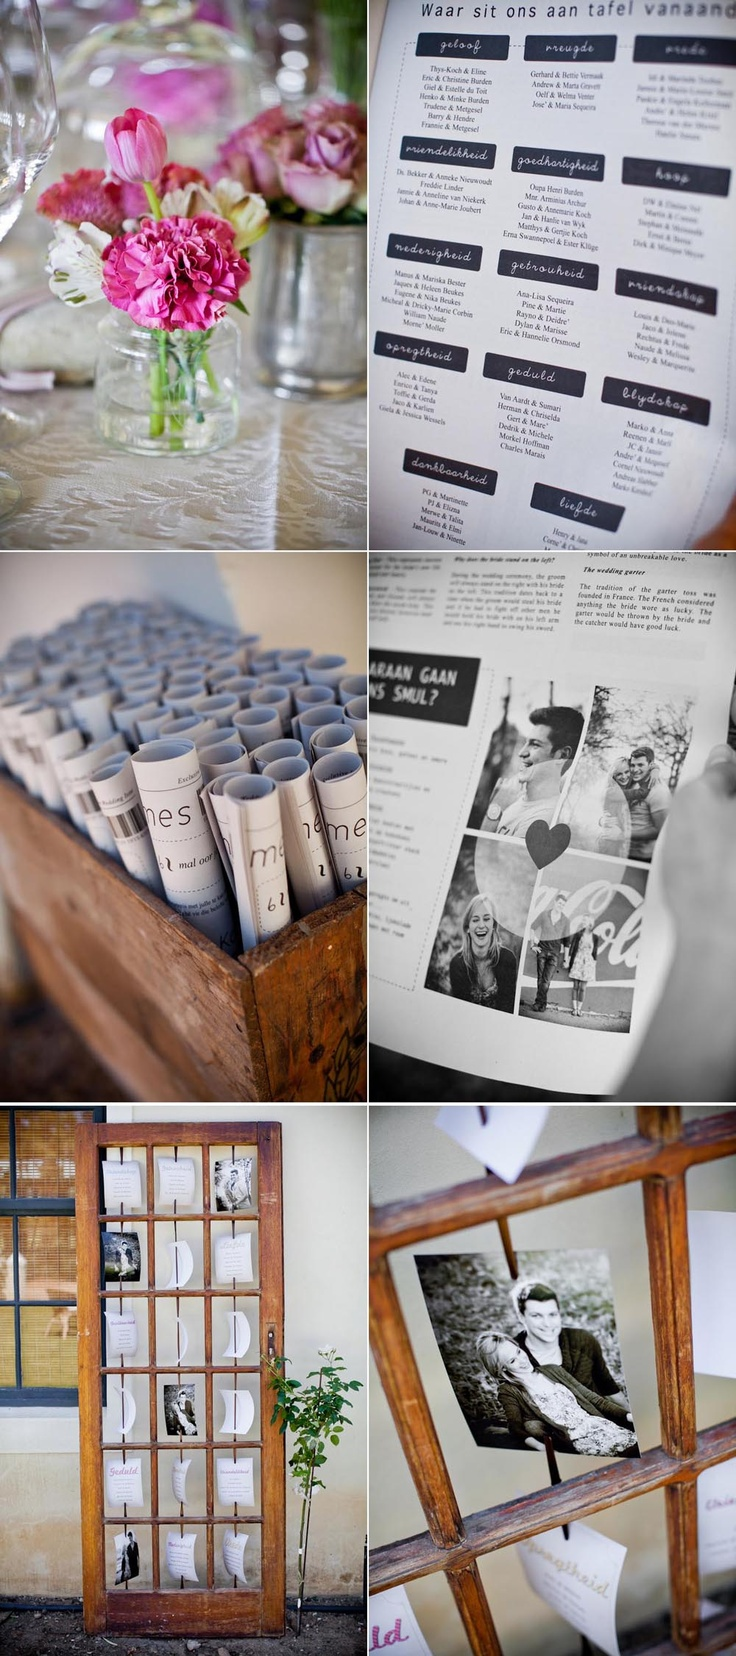 I love this photo display idea! Super Cute.